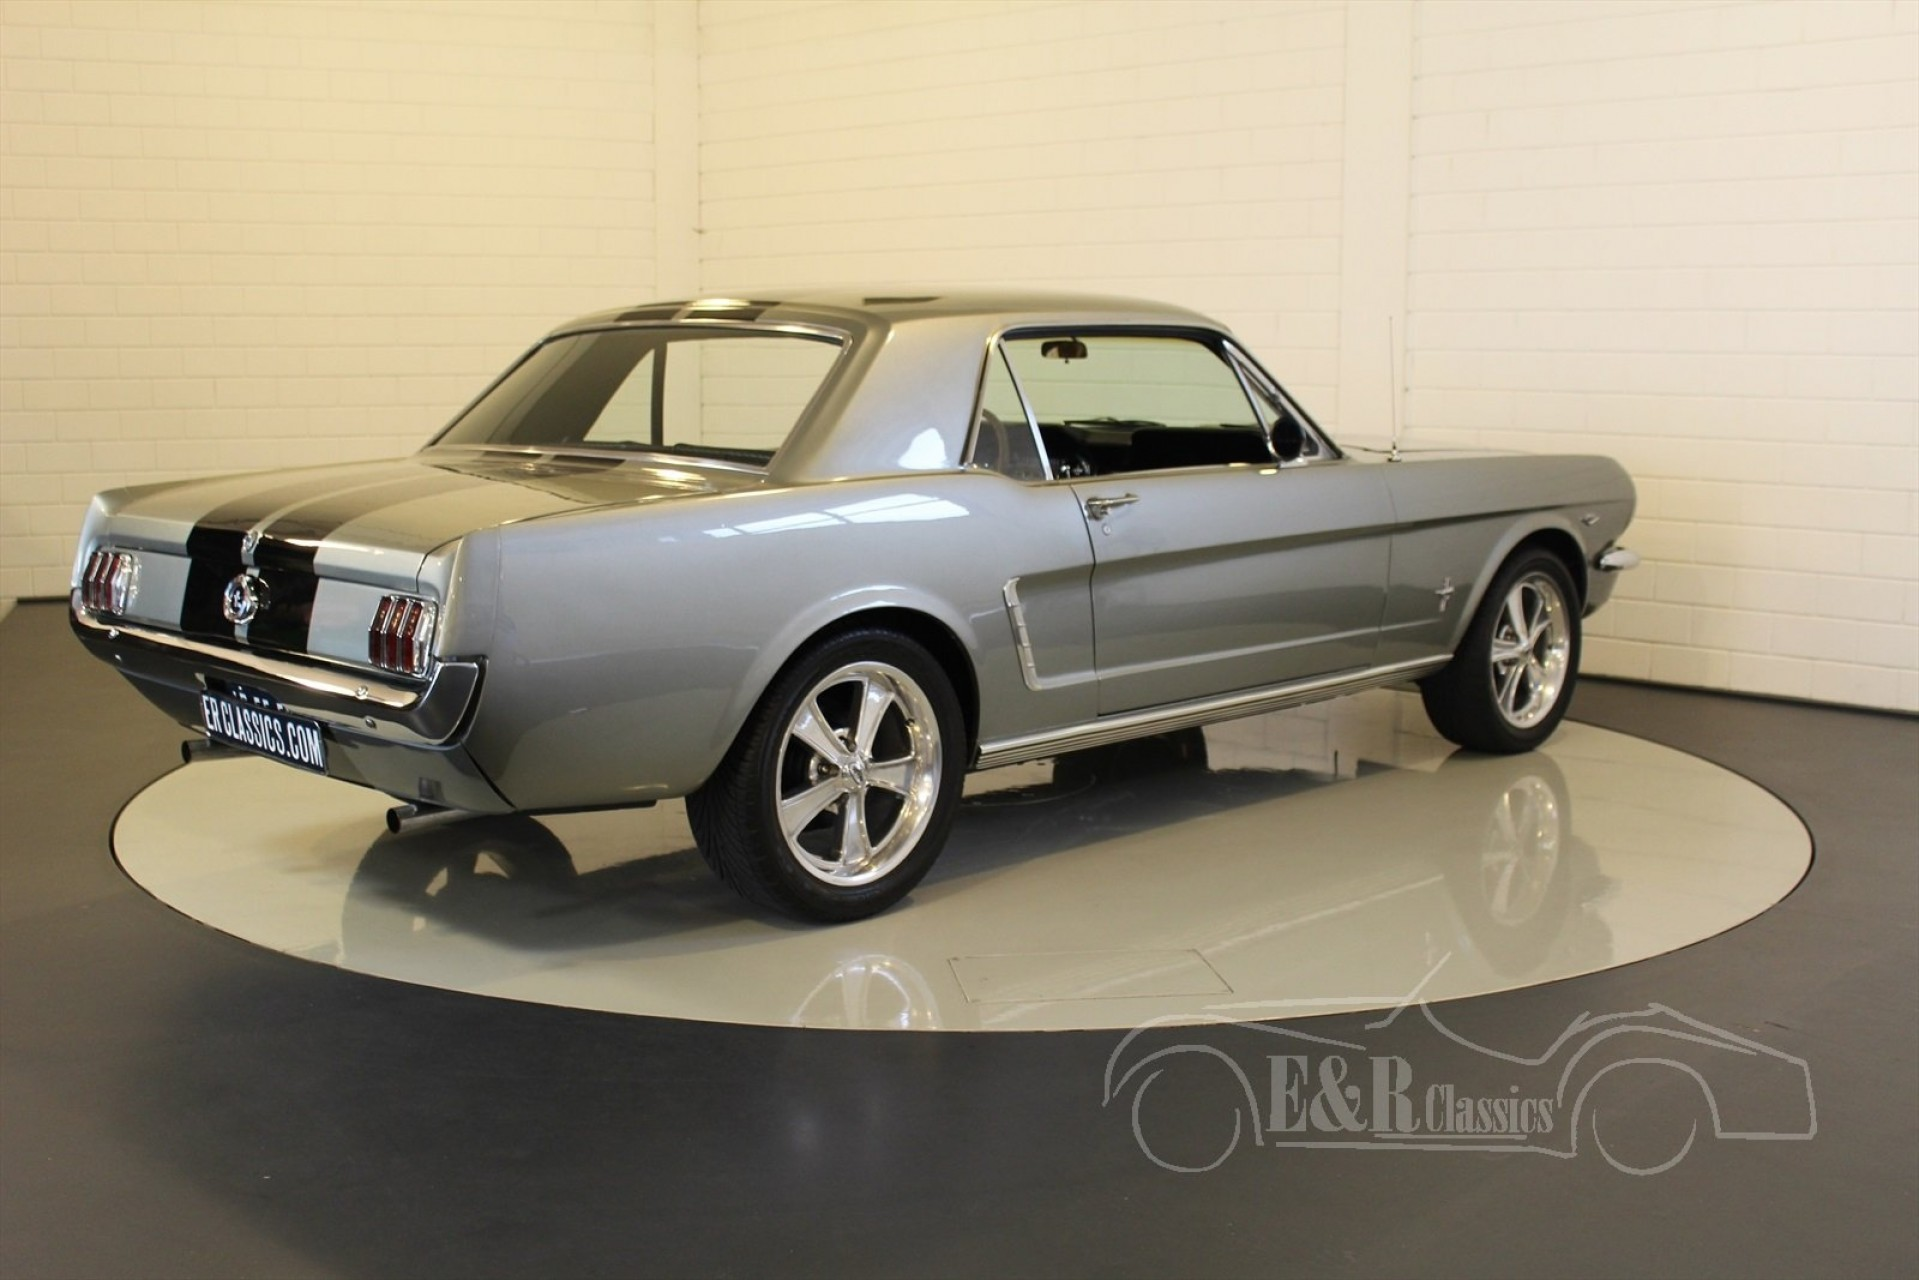 ford mustang coupe 1965 for sale at erclassics. Black Bedroom Furniture Sets. Home Design Ideas